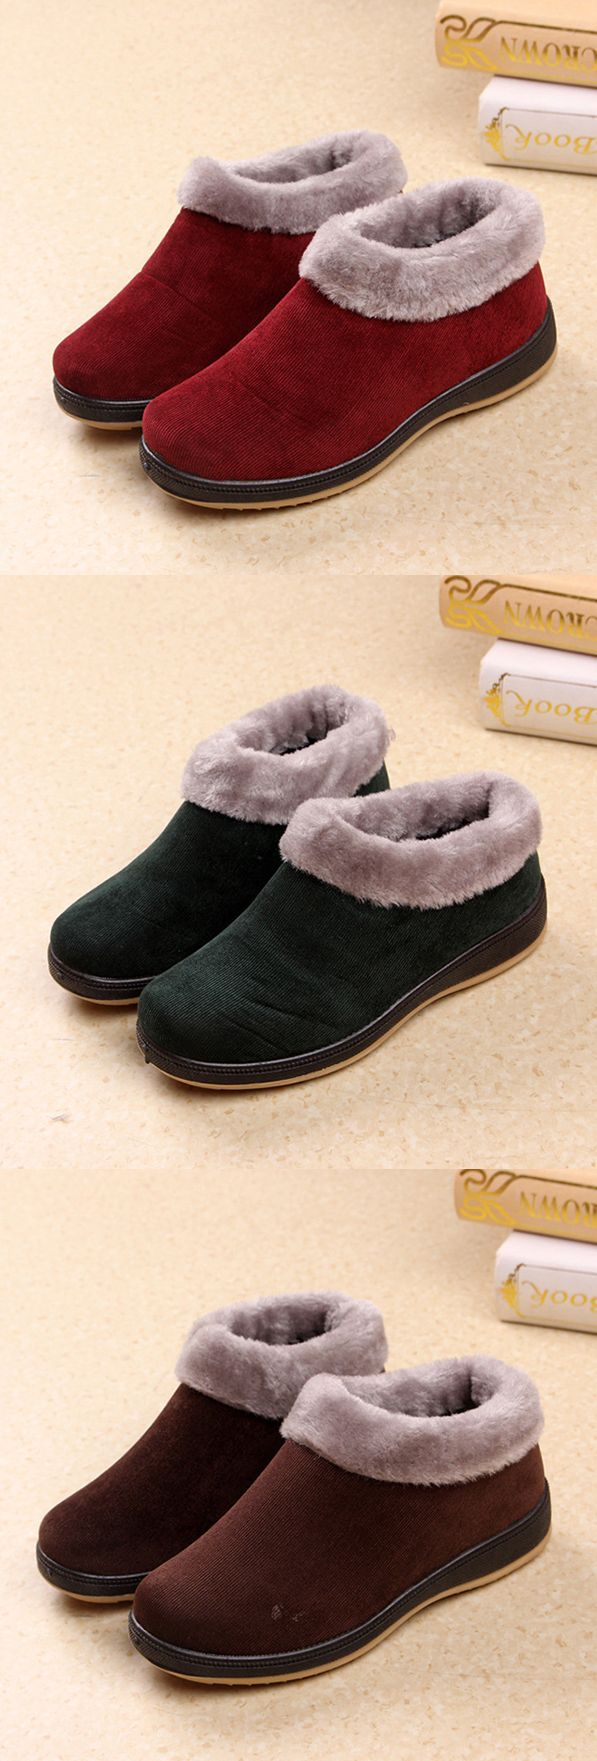 US$17.25 Fur Lining Warm Casual Boots For Women#winter shoes